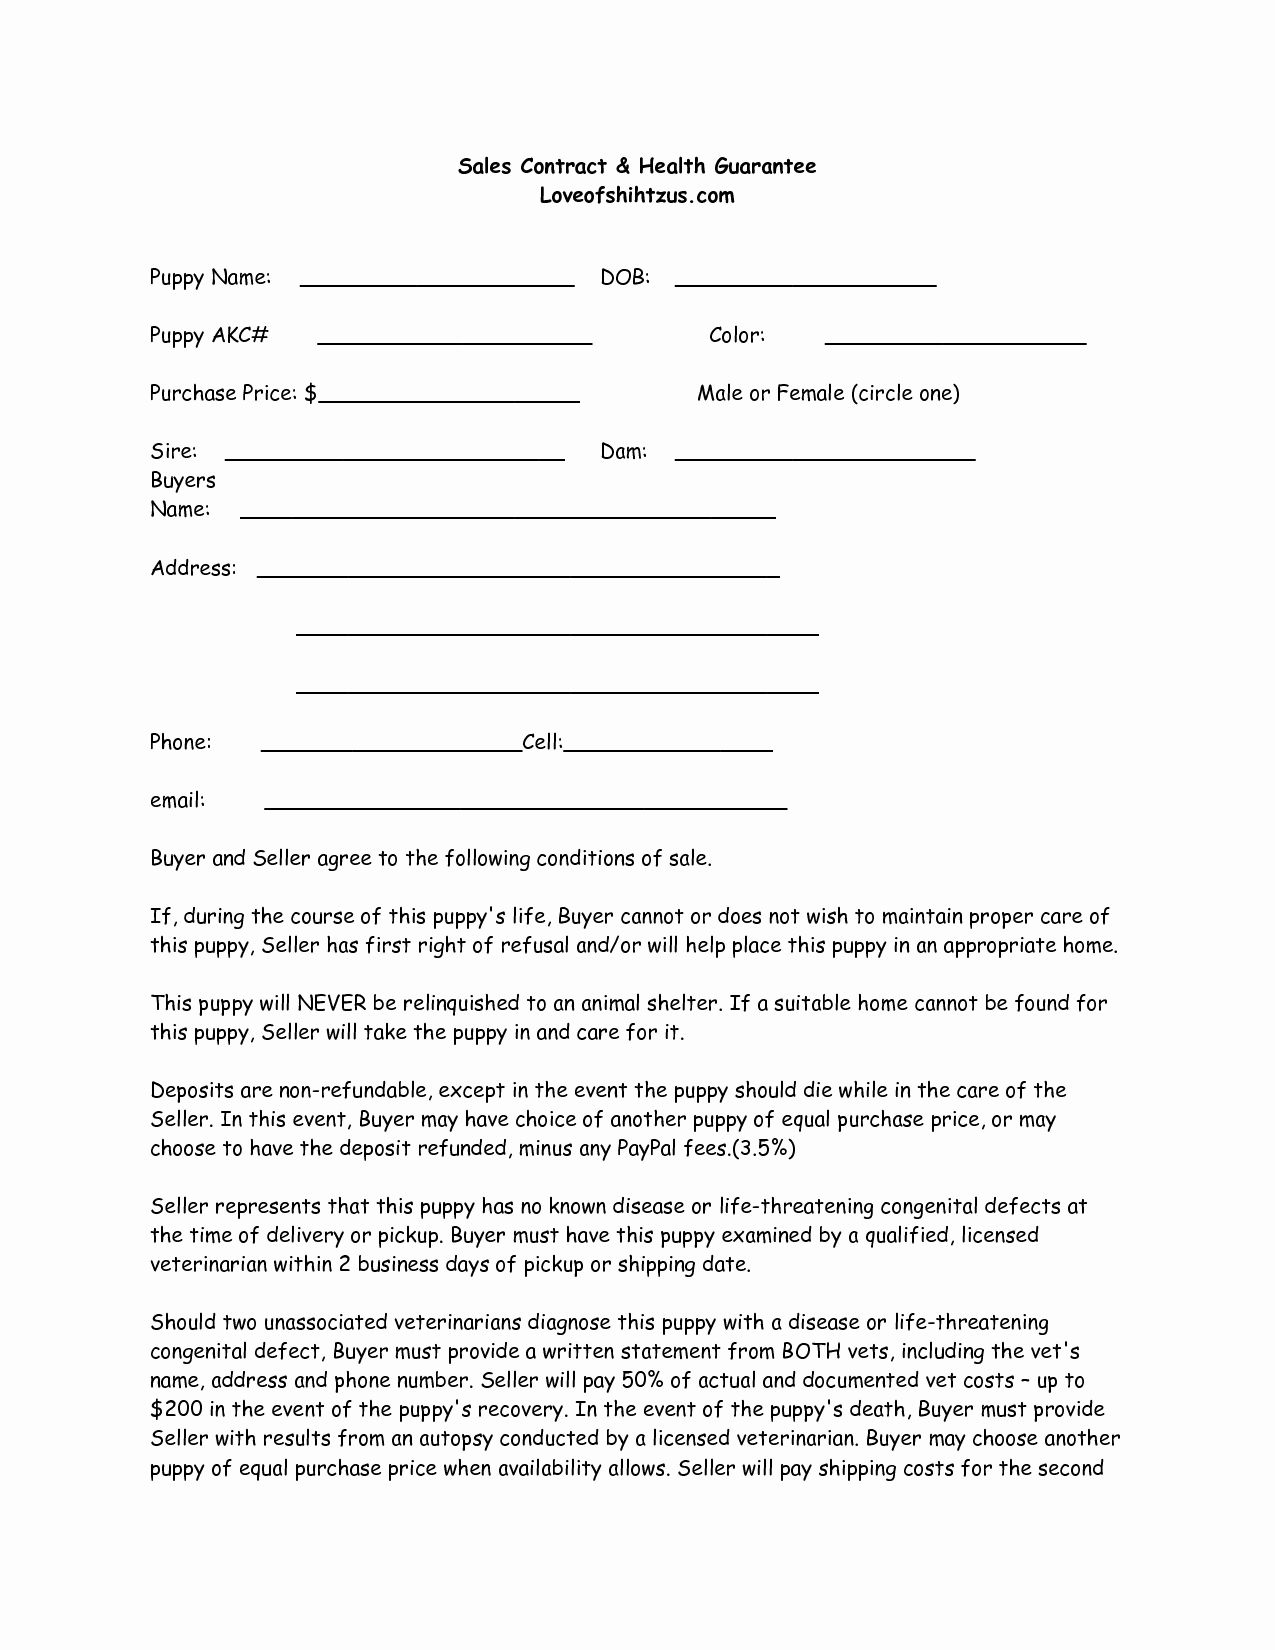 Dog Training Contract Template In 2020 Whelping Puppies